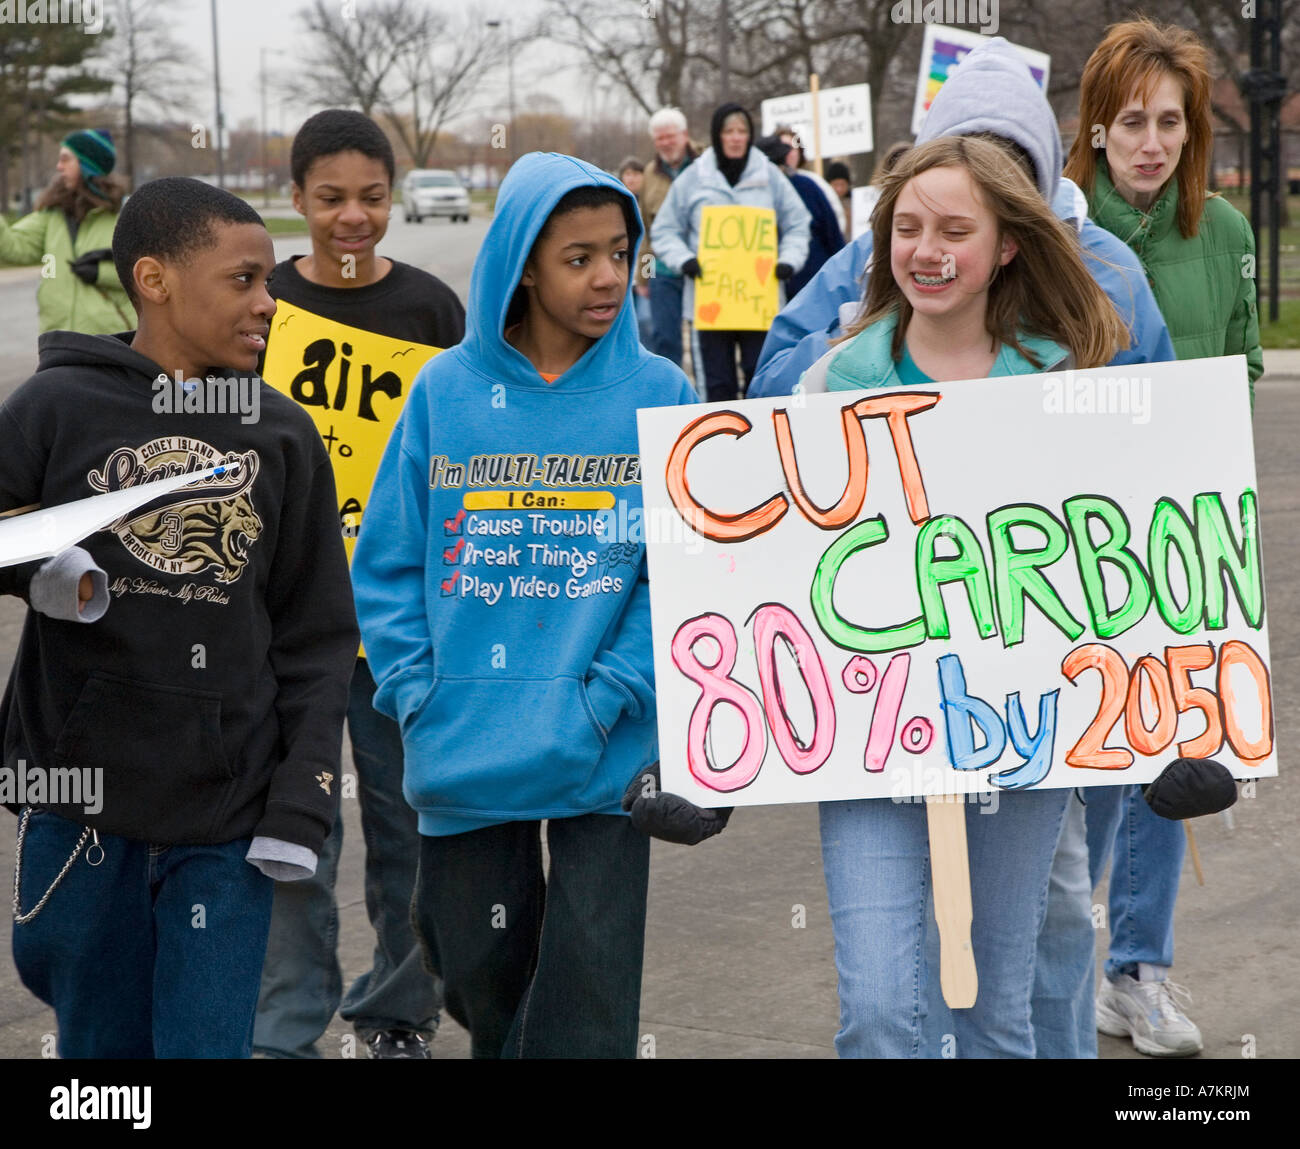 Global Warming Protest - Stock Image